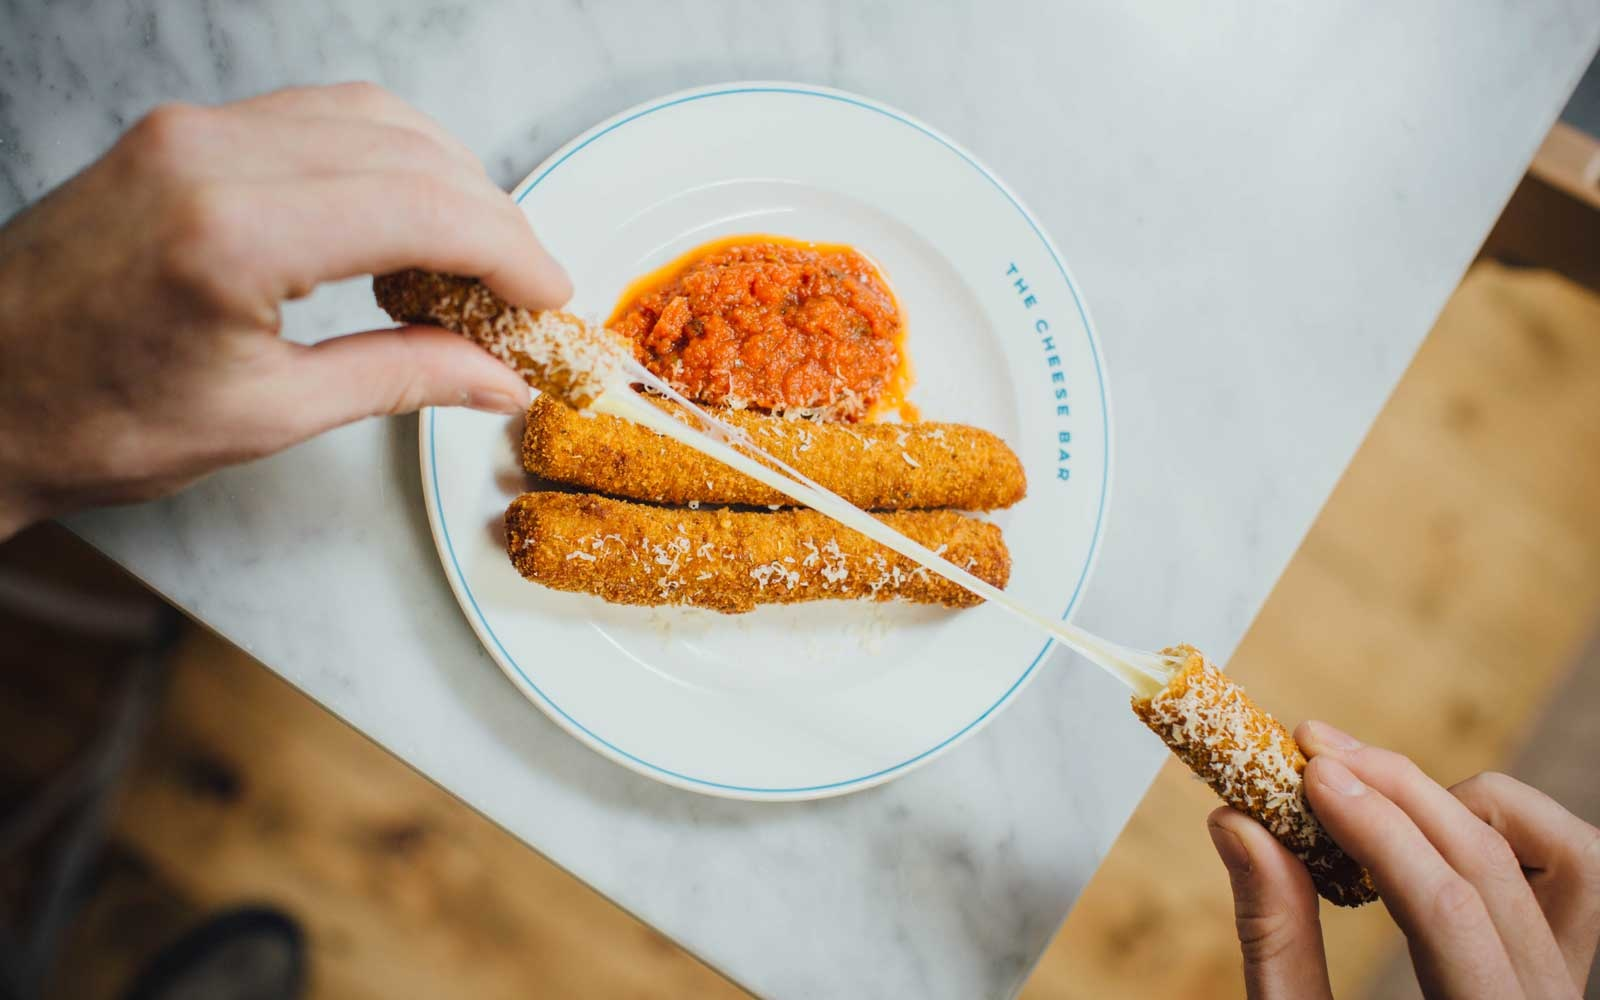 Mozzarella Sticks at Cheese Bar in London